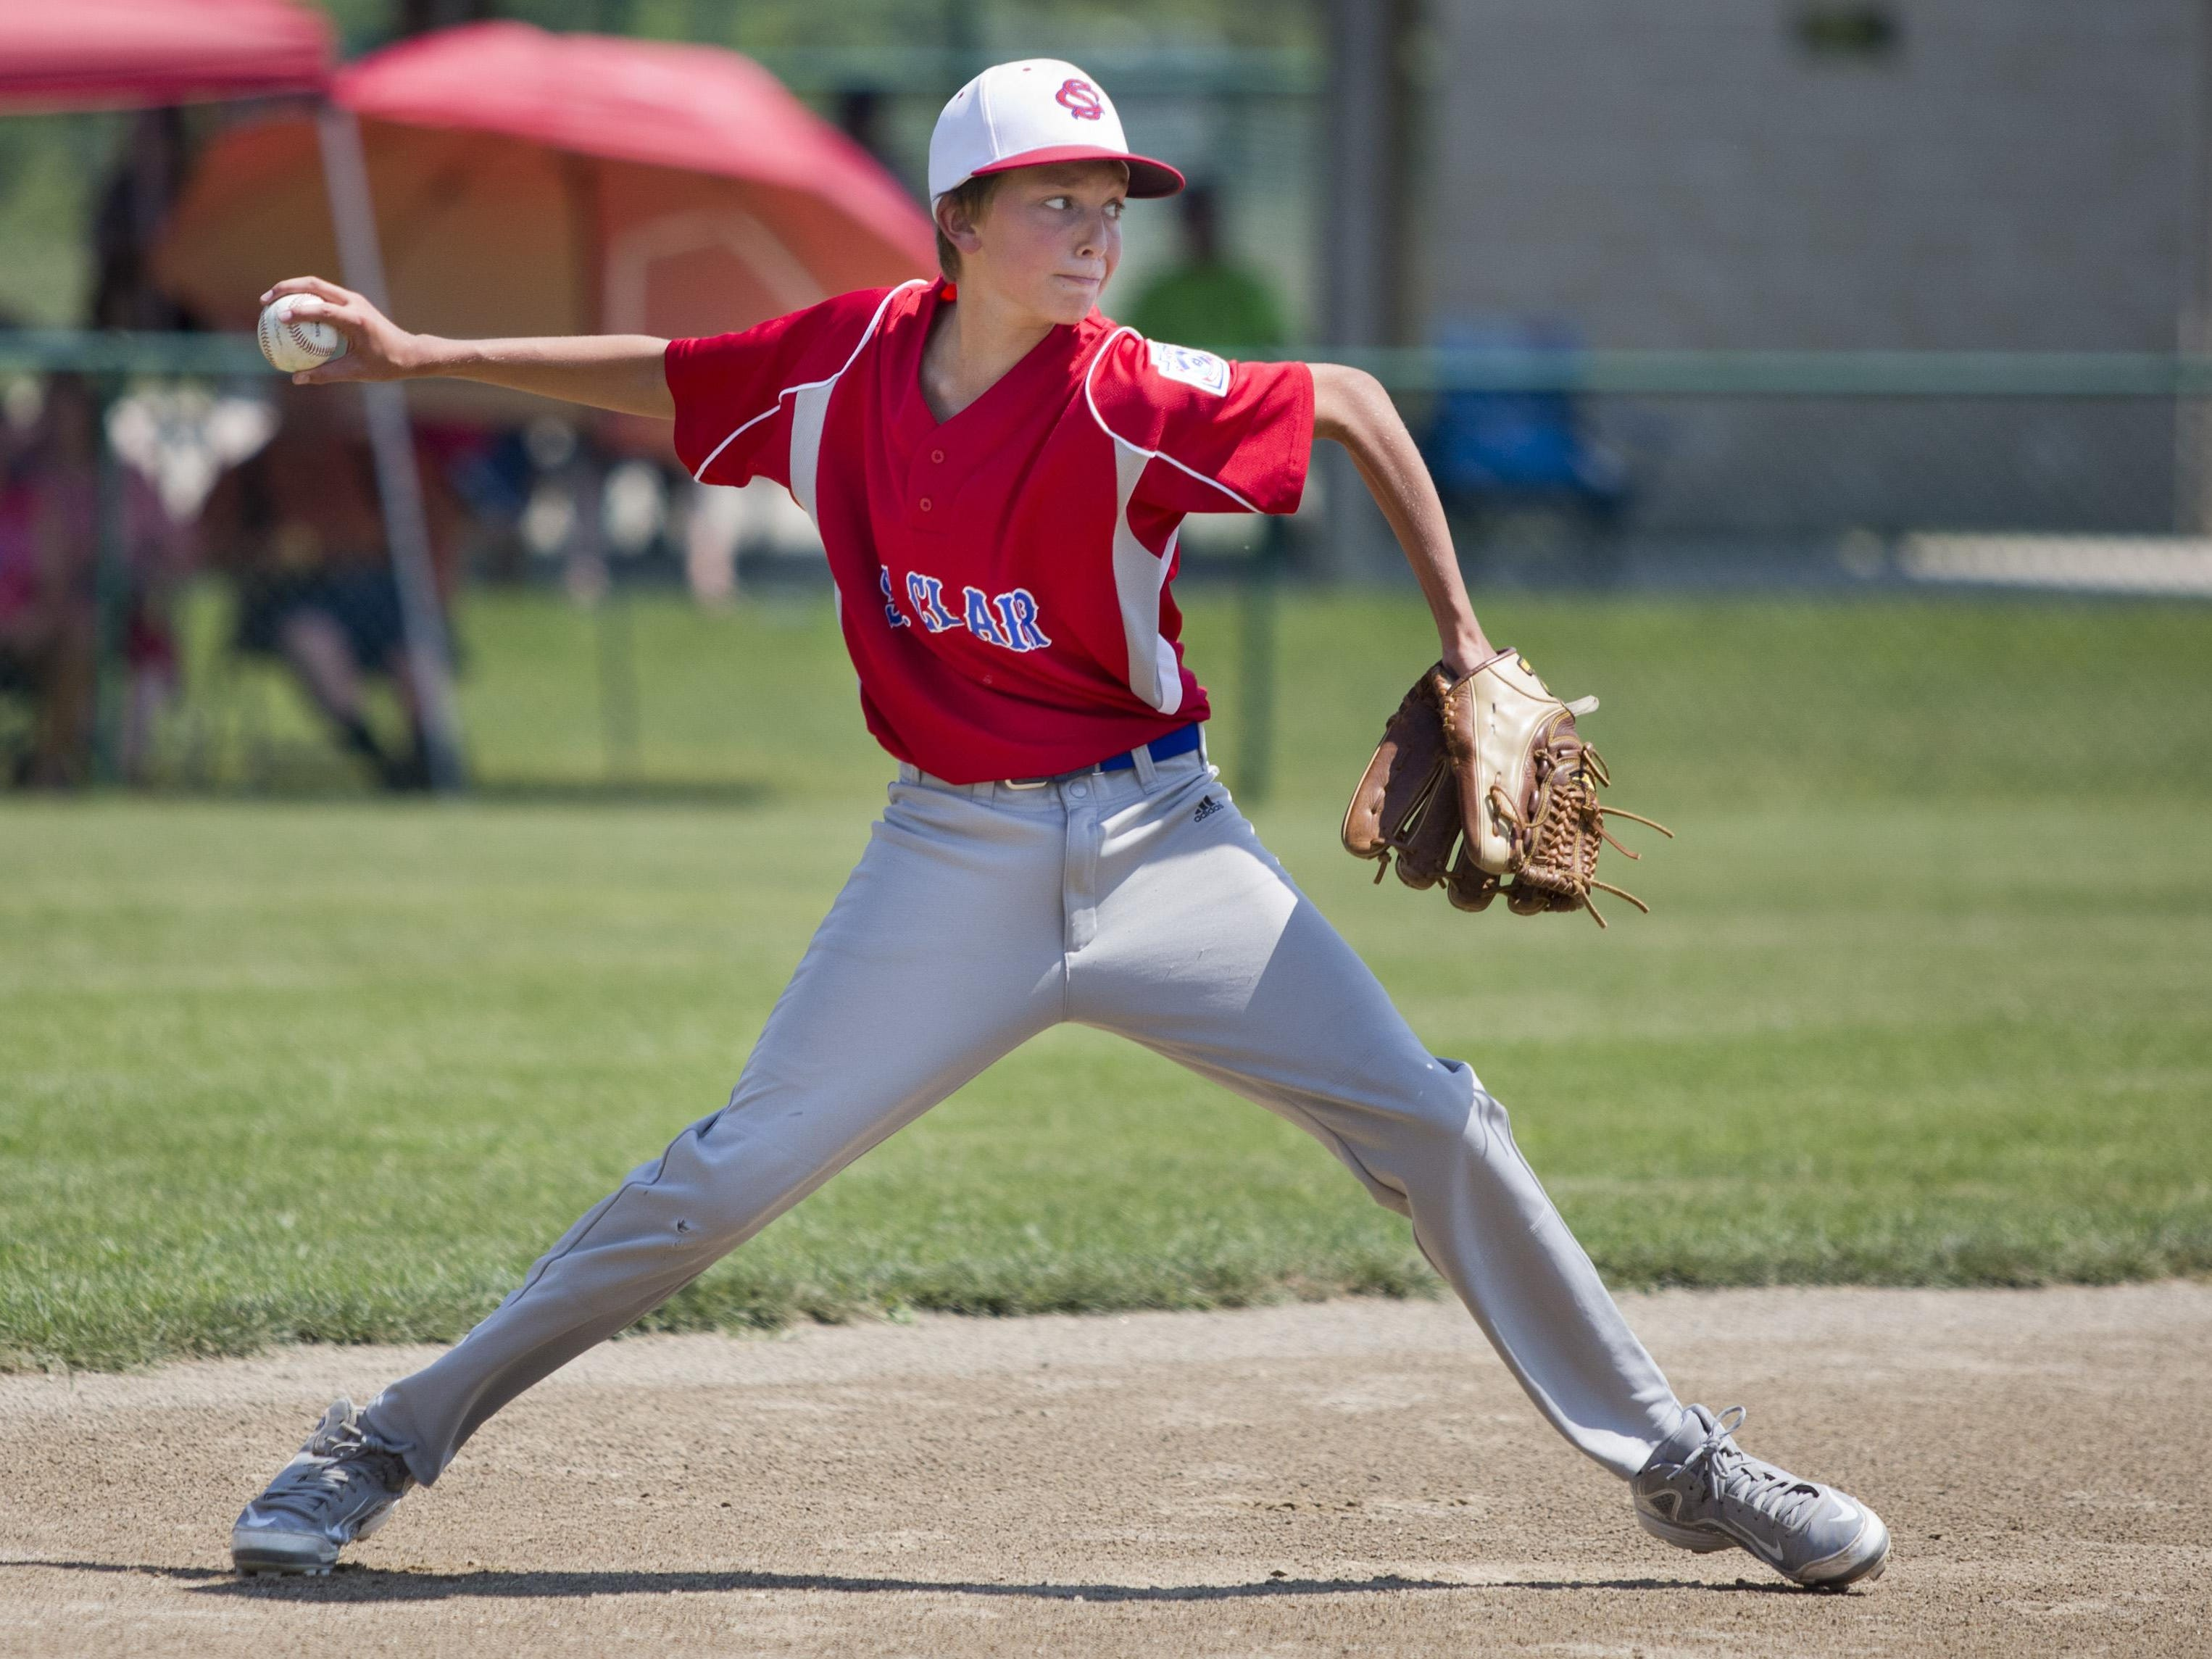 Eli Lohr throws the ball to first for an out during a 10-and-under state semifinal baseball game Tuesday, July 28, 2015 in St. Clair.